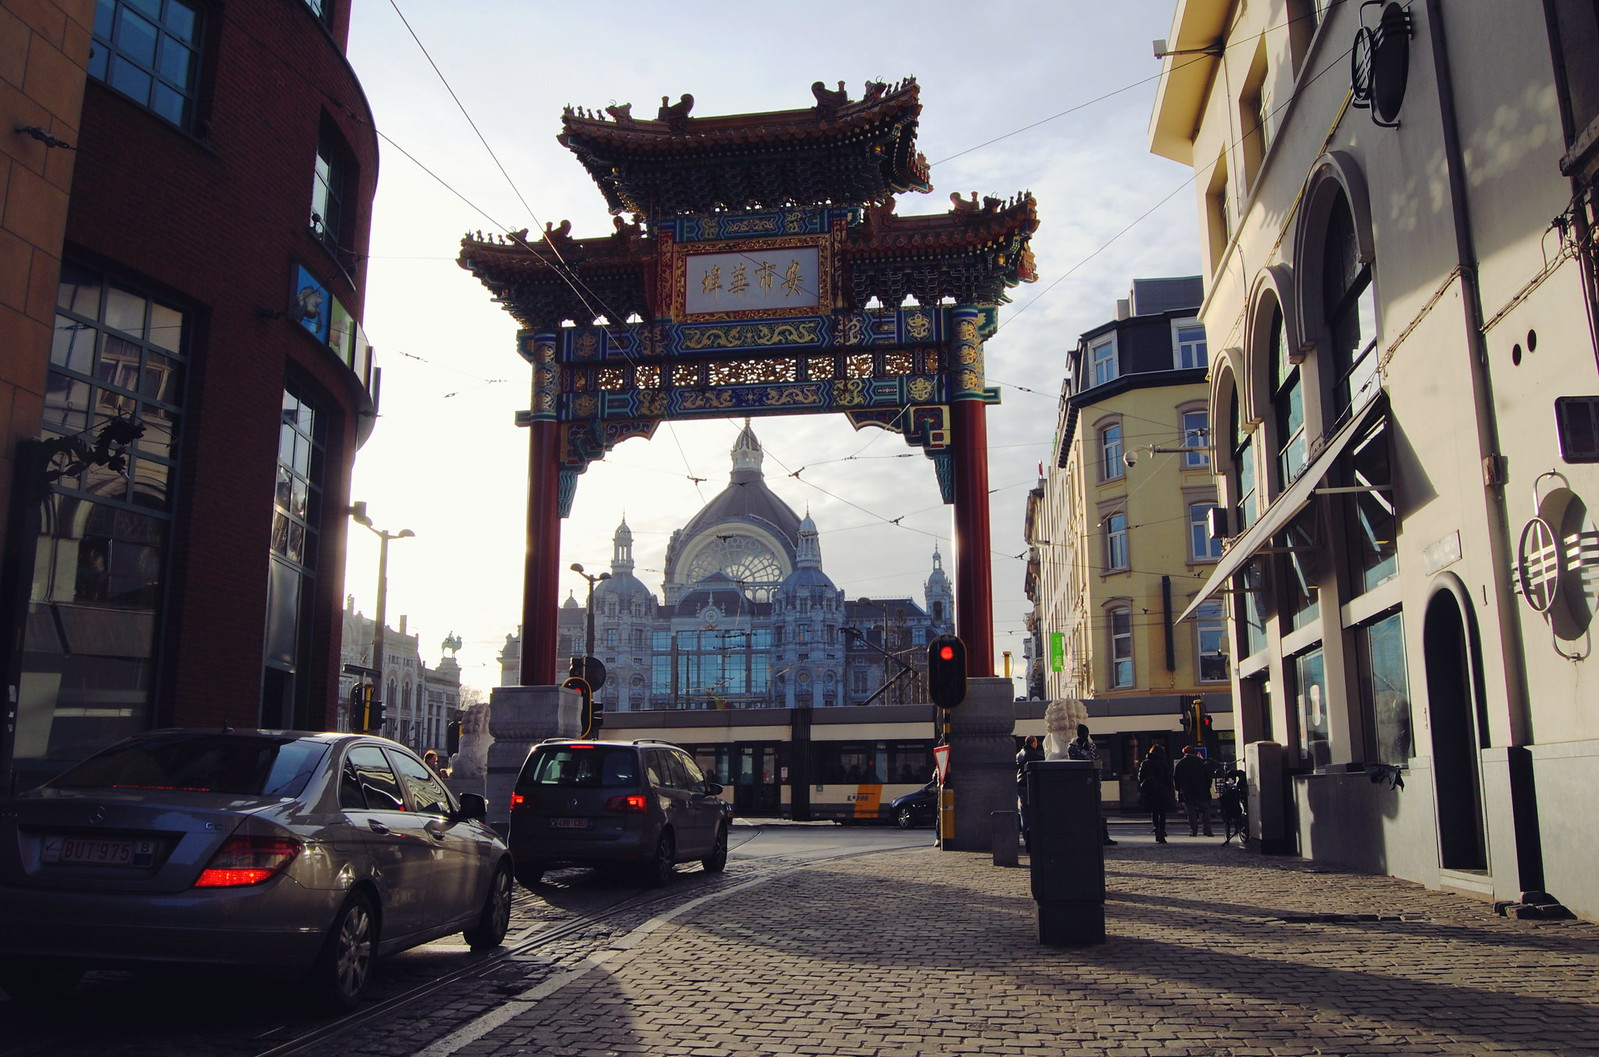 Things to do in Antwerp: a view of the Chinatown gate and the central station.